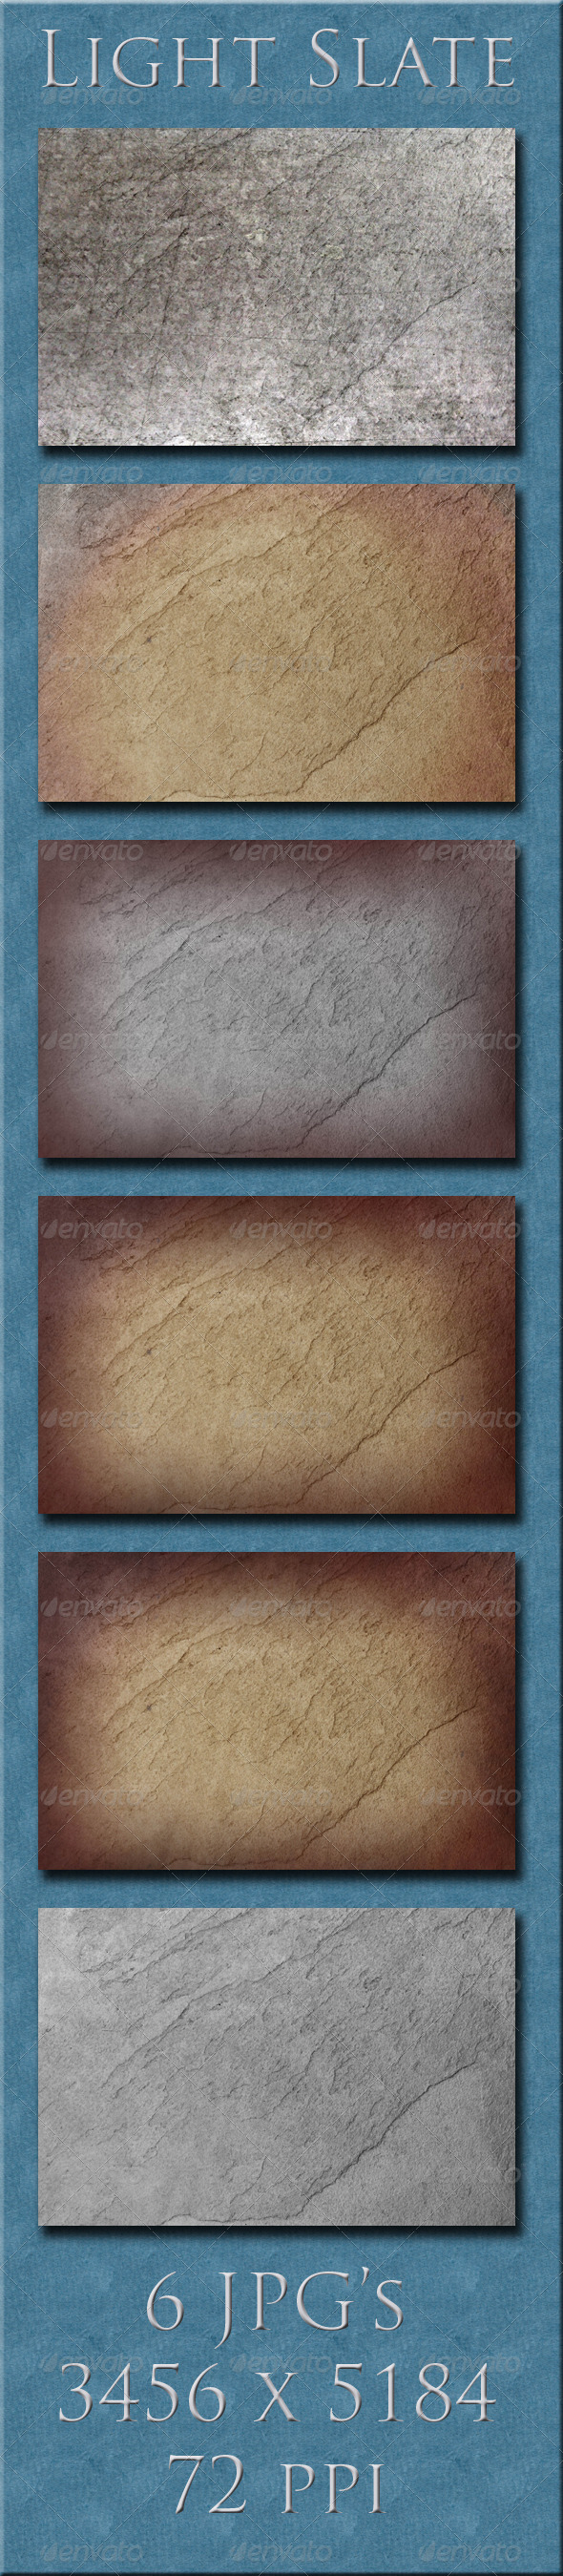 GraphicRiver Light Slate 4087335